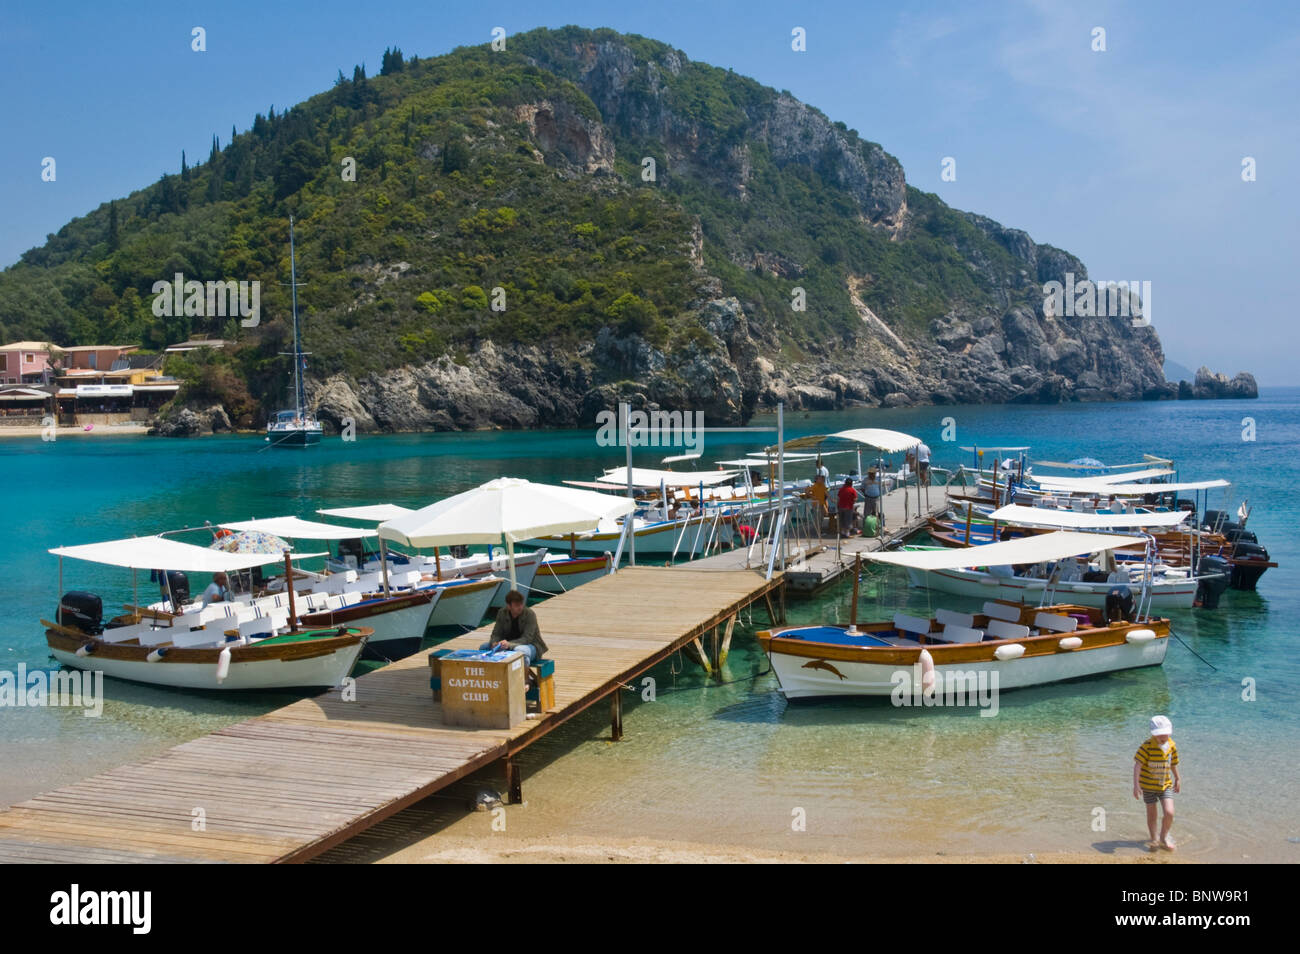 Local boatmen wait for tourists for trips around coastline at Paleokastritsa on the Greek island of Corfu Greece - Stock Image